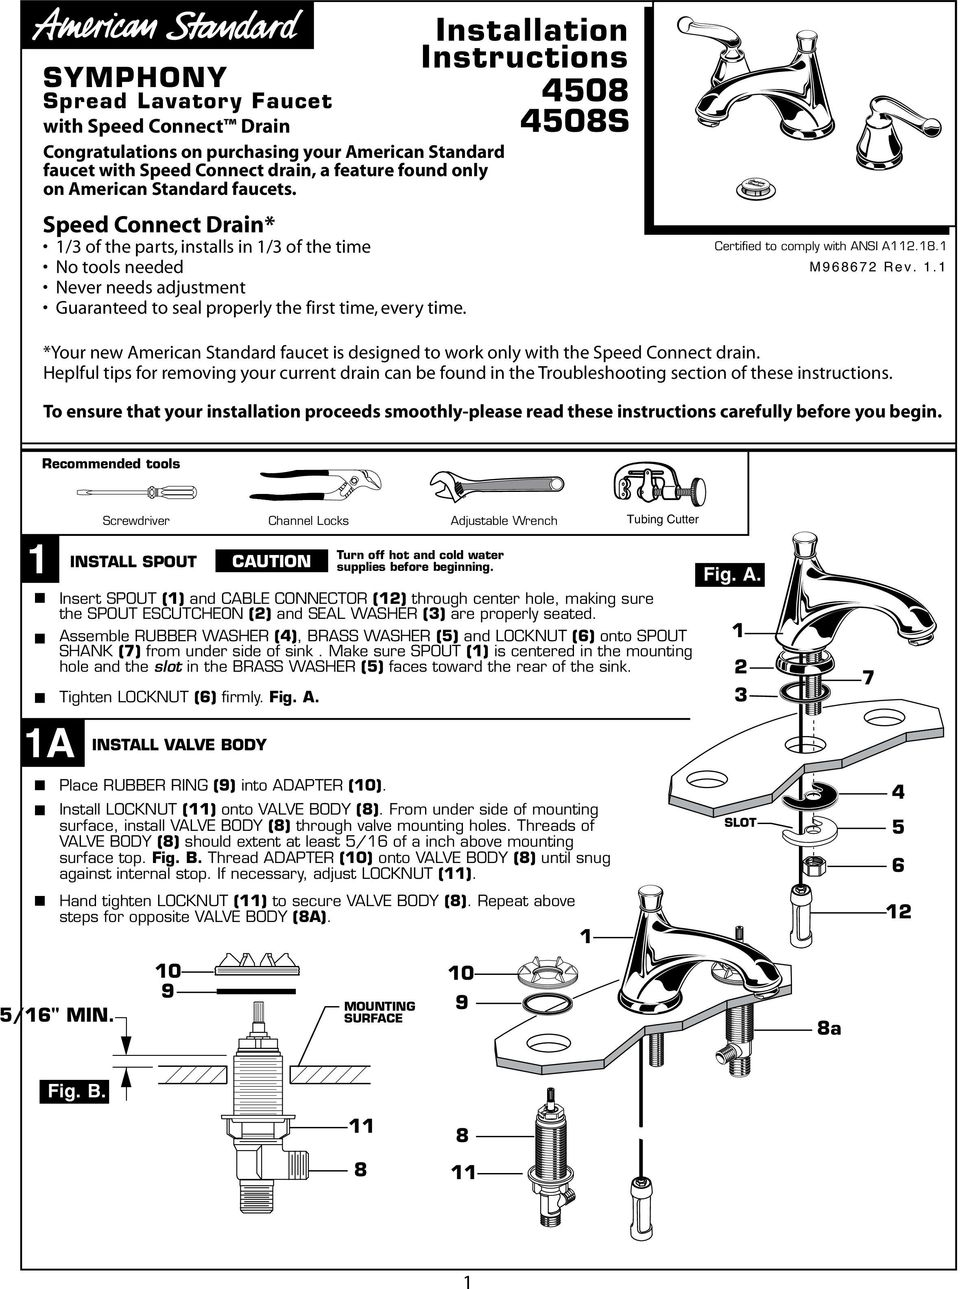 Installation Instructions 08 08S Certified to comply with ANSI A.8. M98 Rev.. *Your new American Standard faucet is designed to work only with the Speed Connect drain.